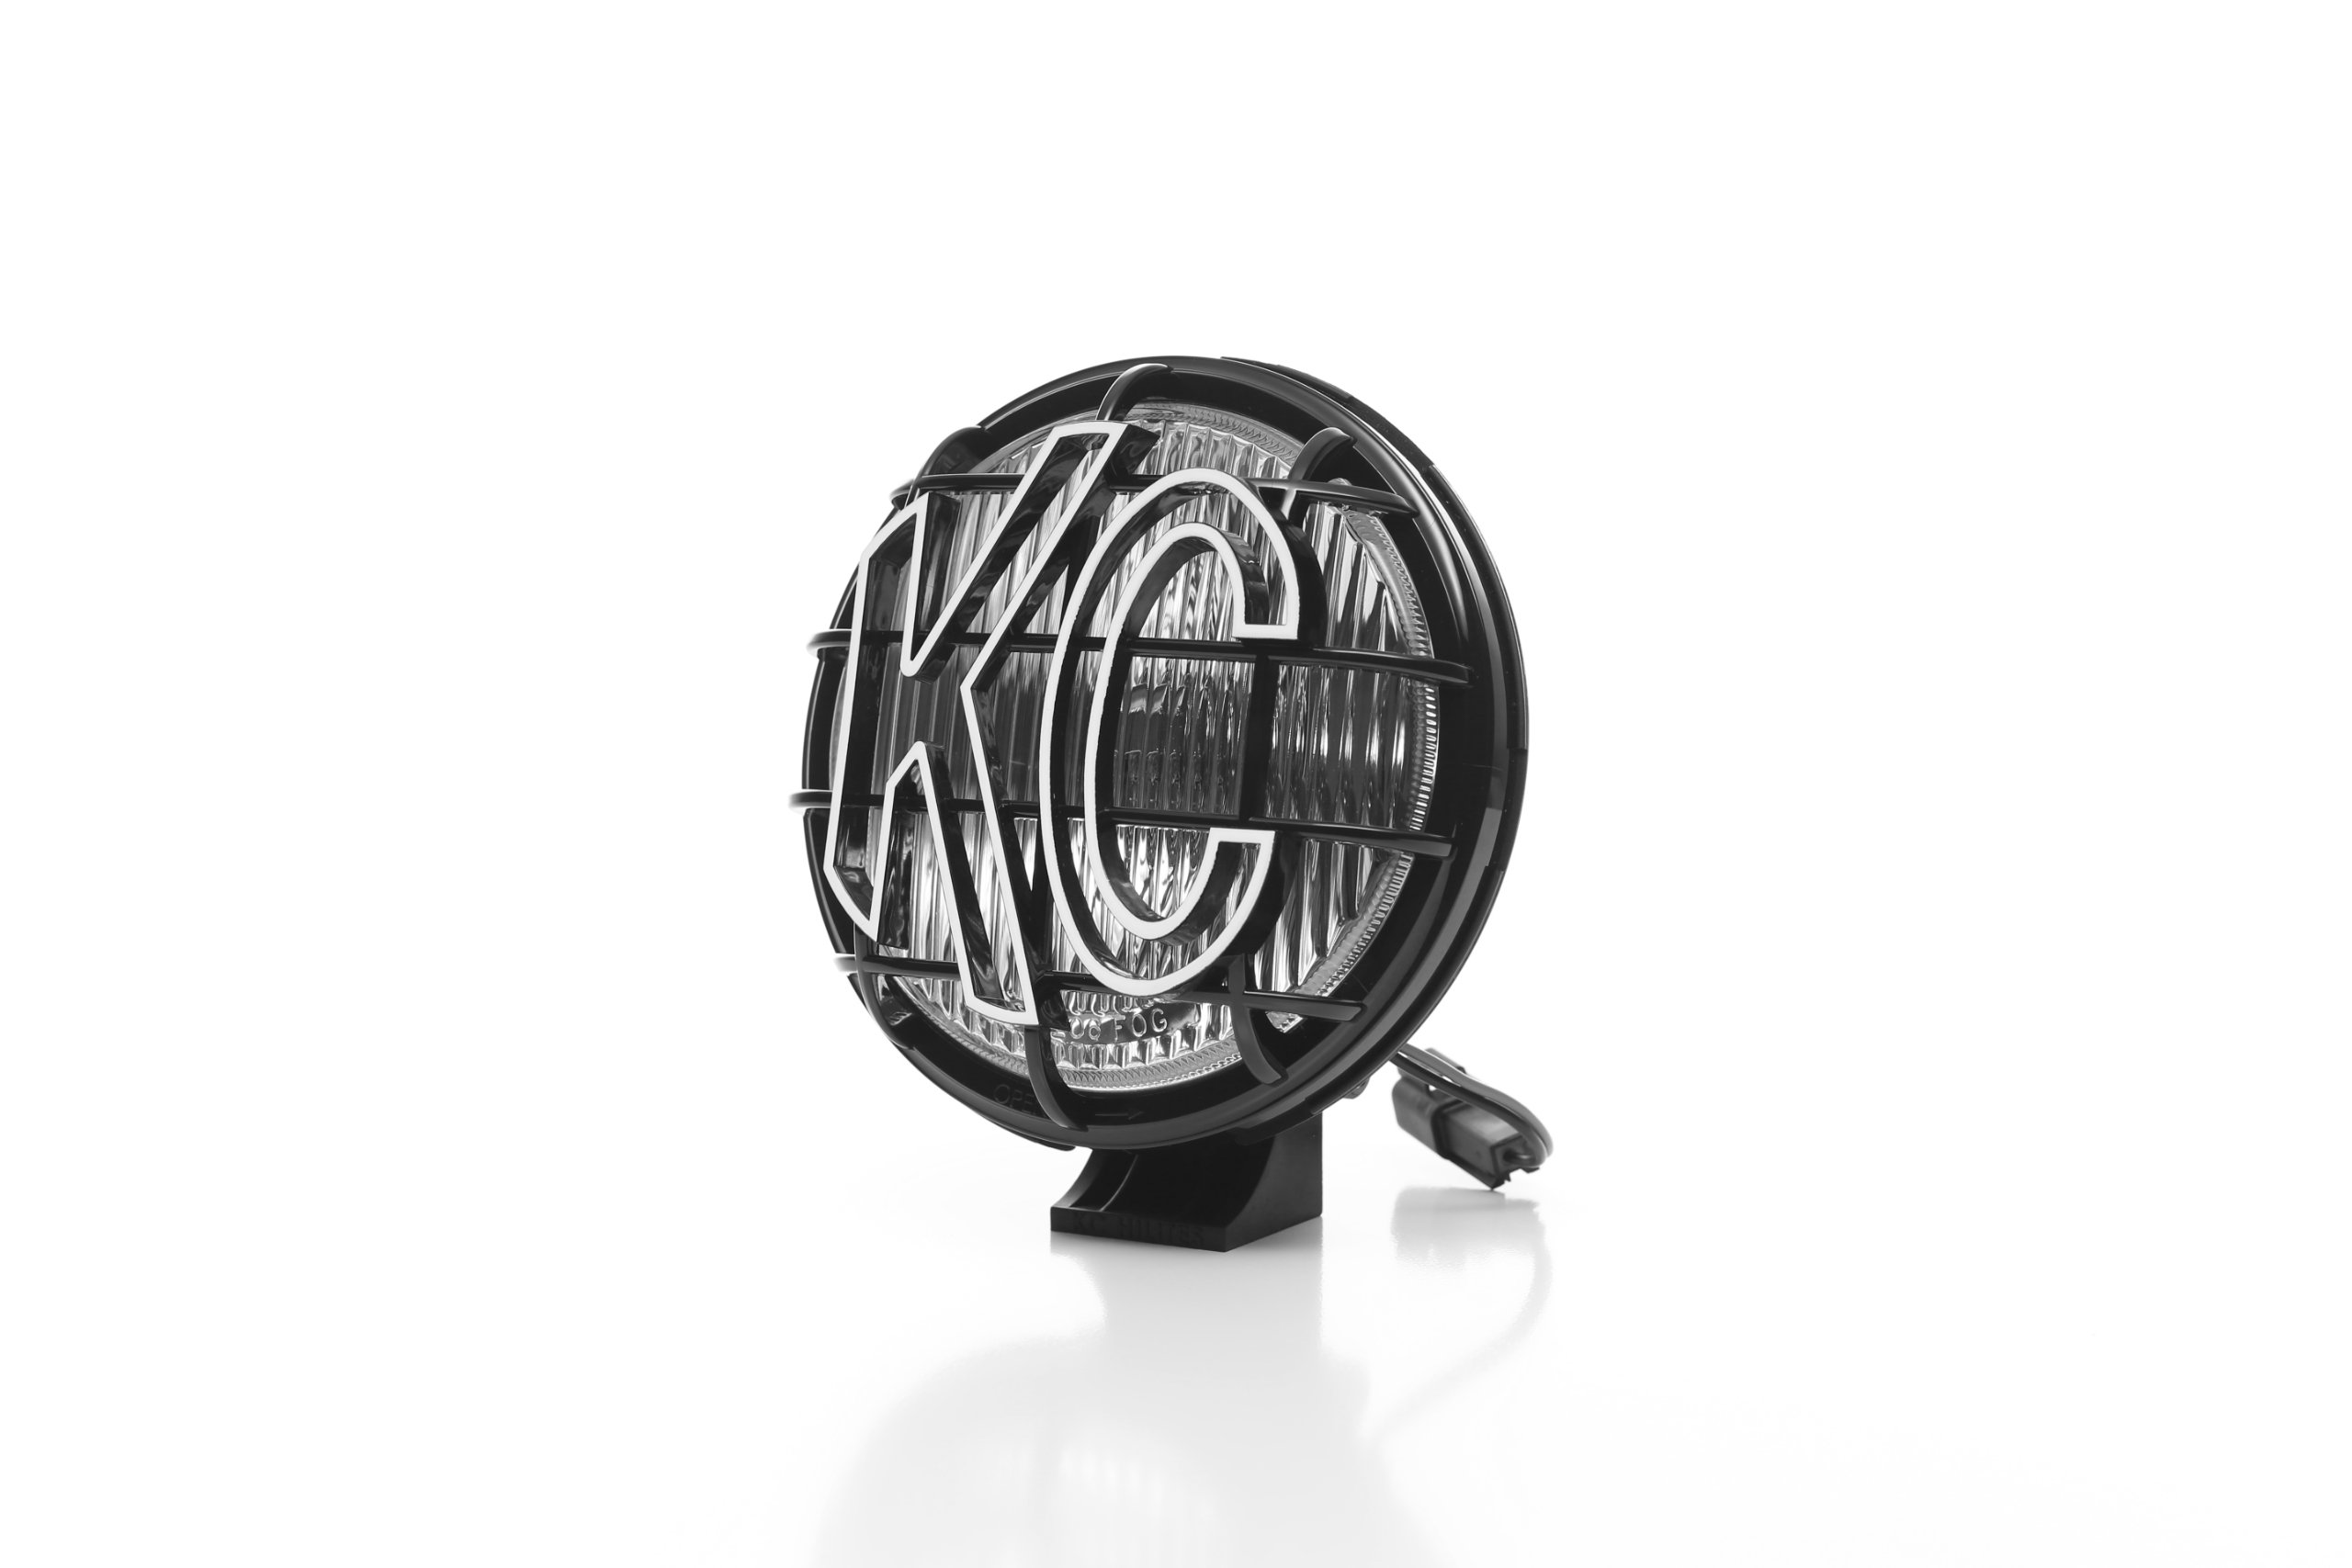 KC HiLiTES 1152 Apollo Pro 6'' 100w Single Fog Light with Integrated Stone Guard by KC HiLiTES (Image #3)